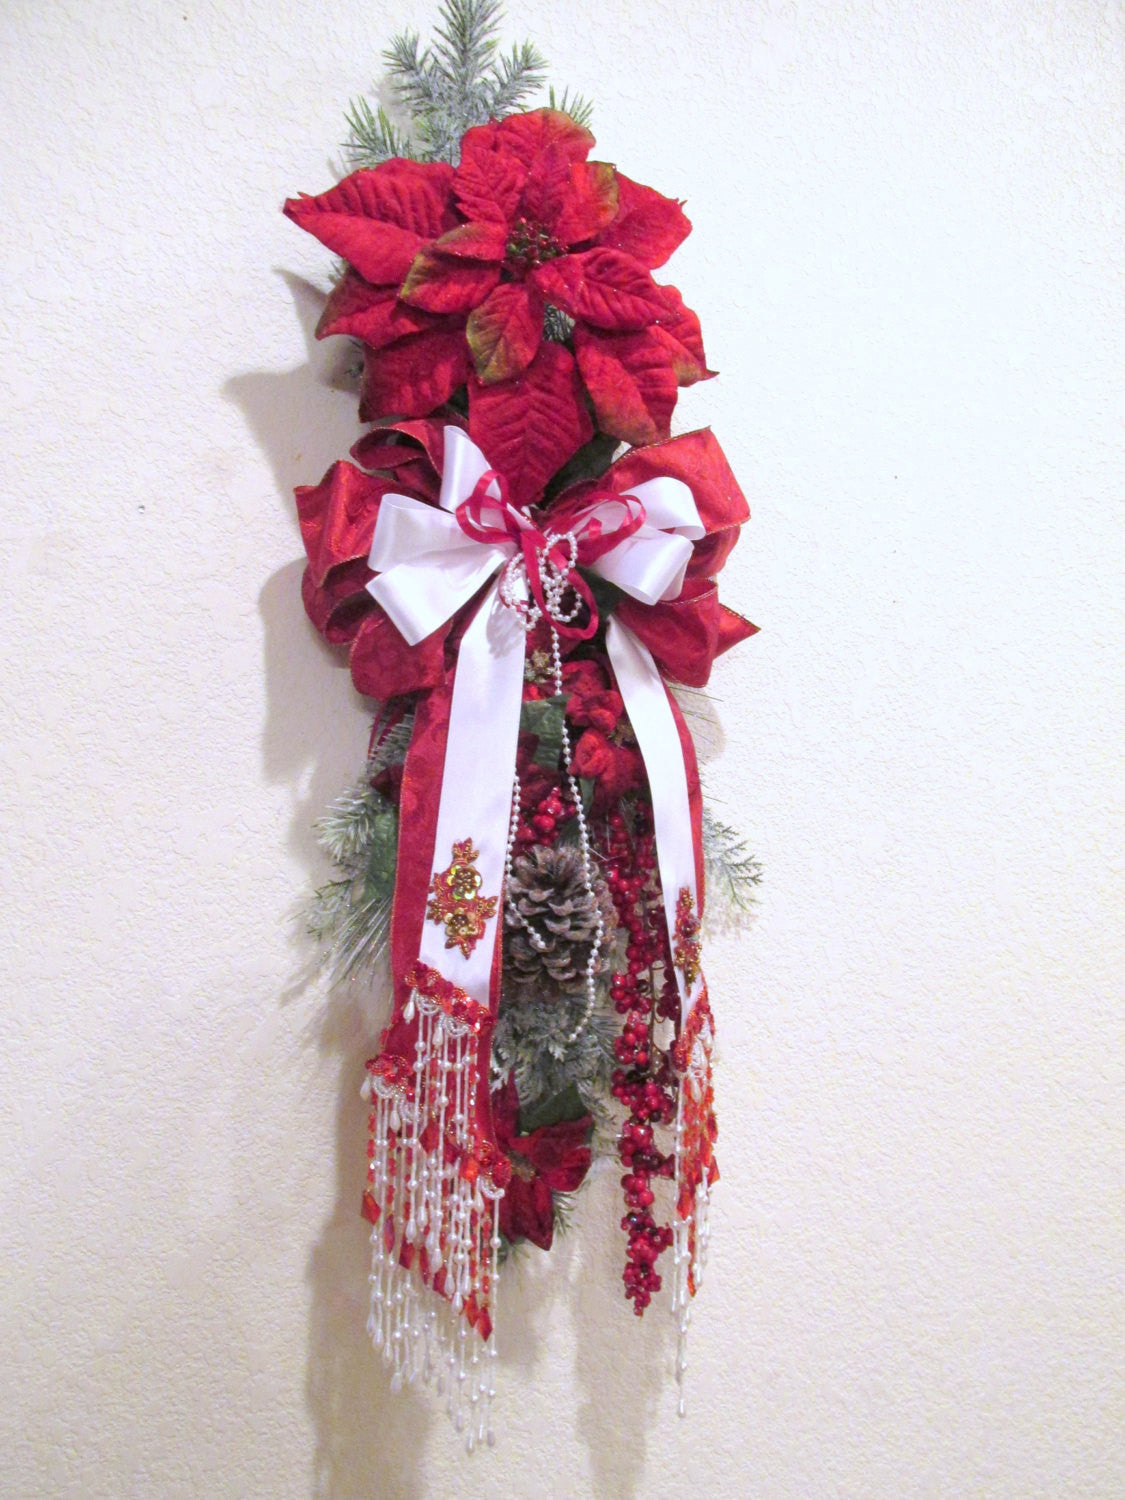 Red and Snowy White Poinsettia Elegant Victorian Style Beaded Vertical Door Swag for Christmas Wreath or Home Decor - Odyssey Creations